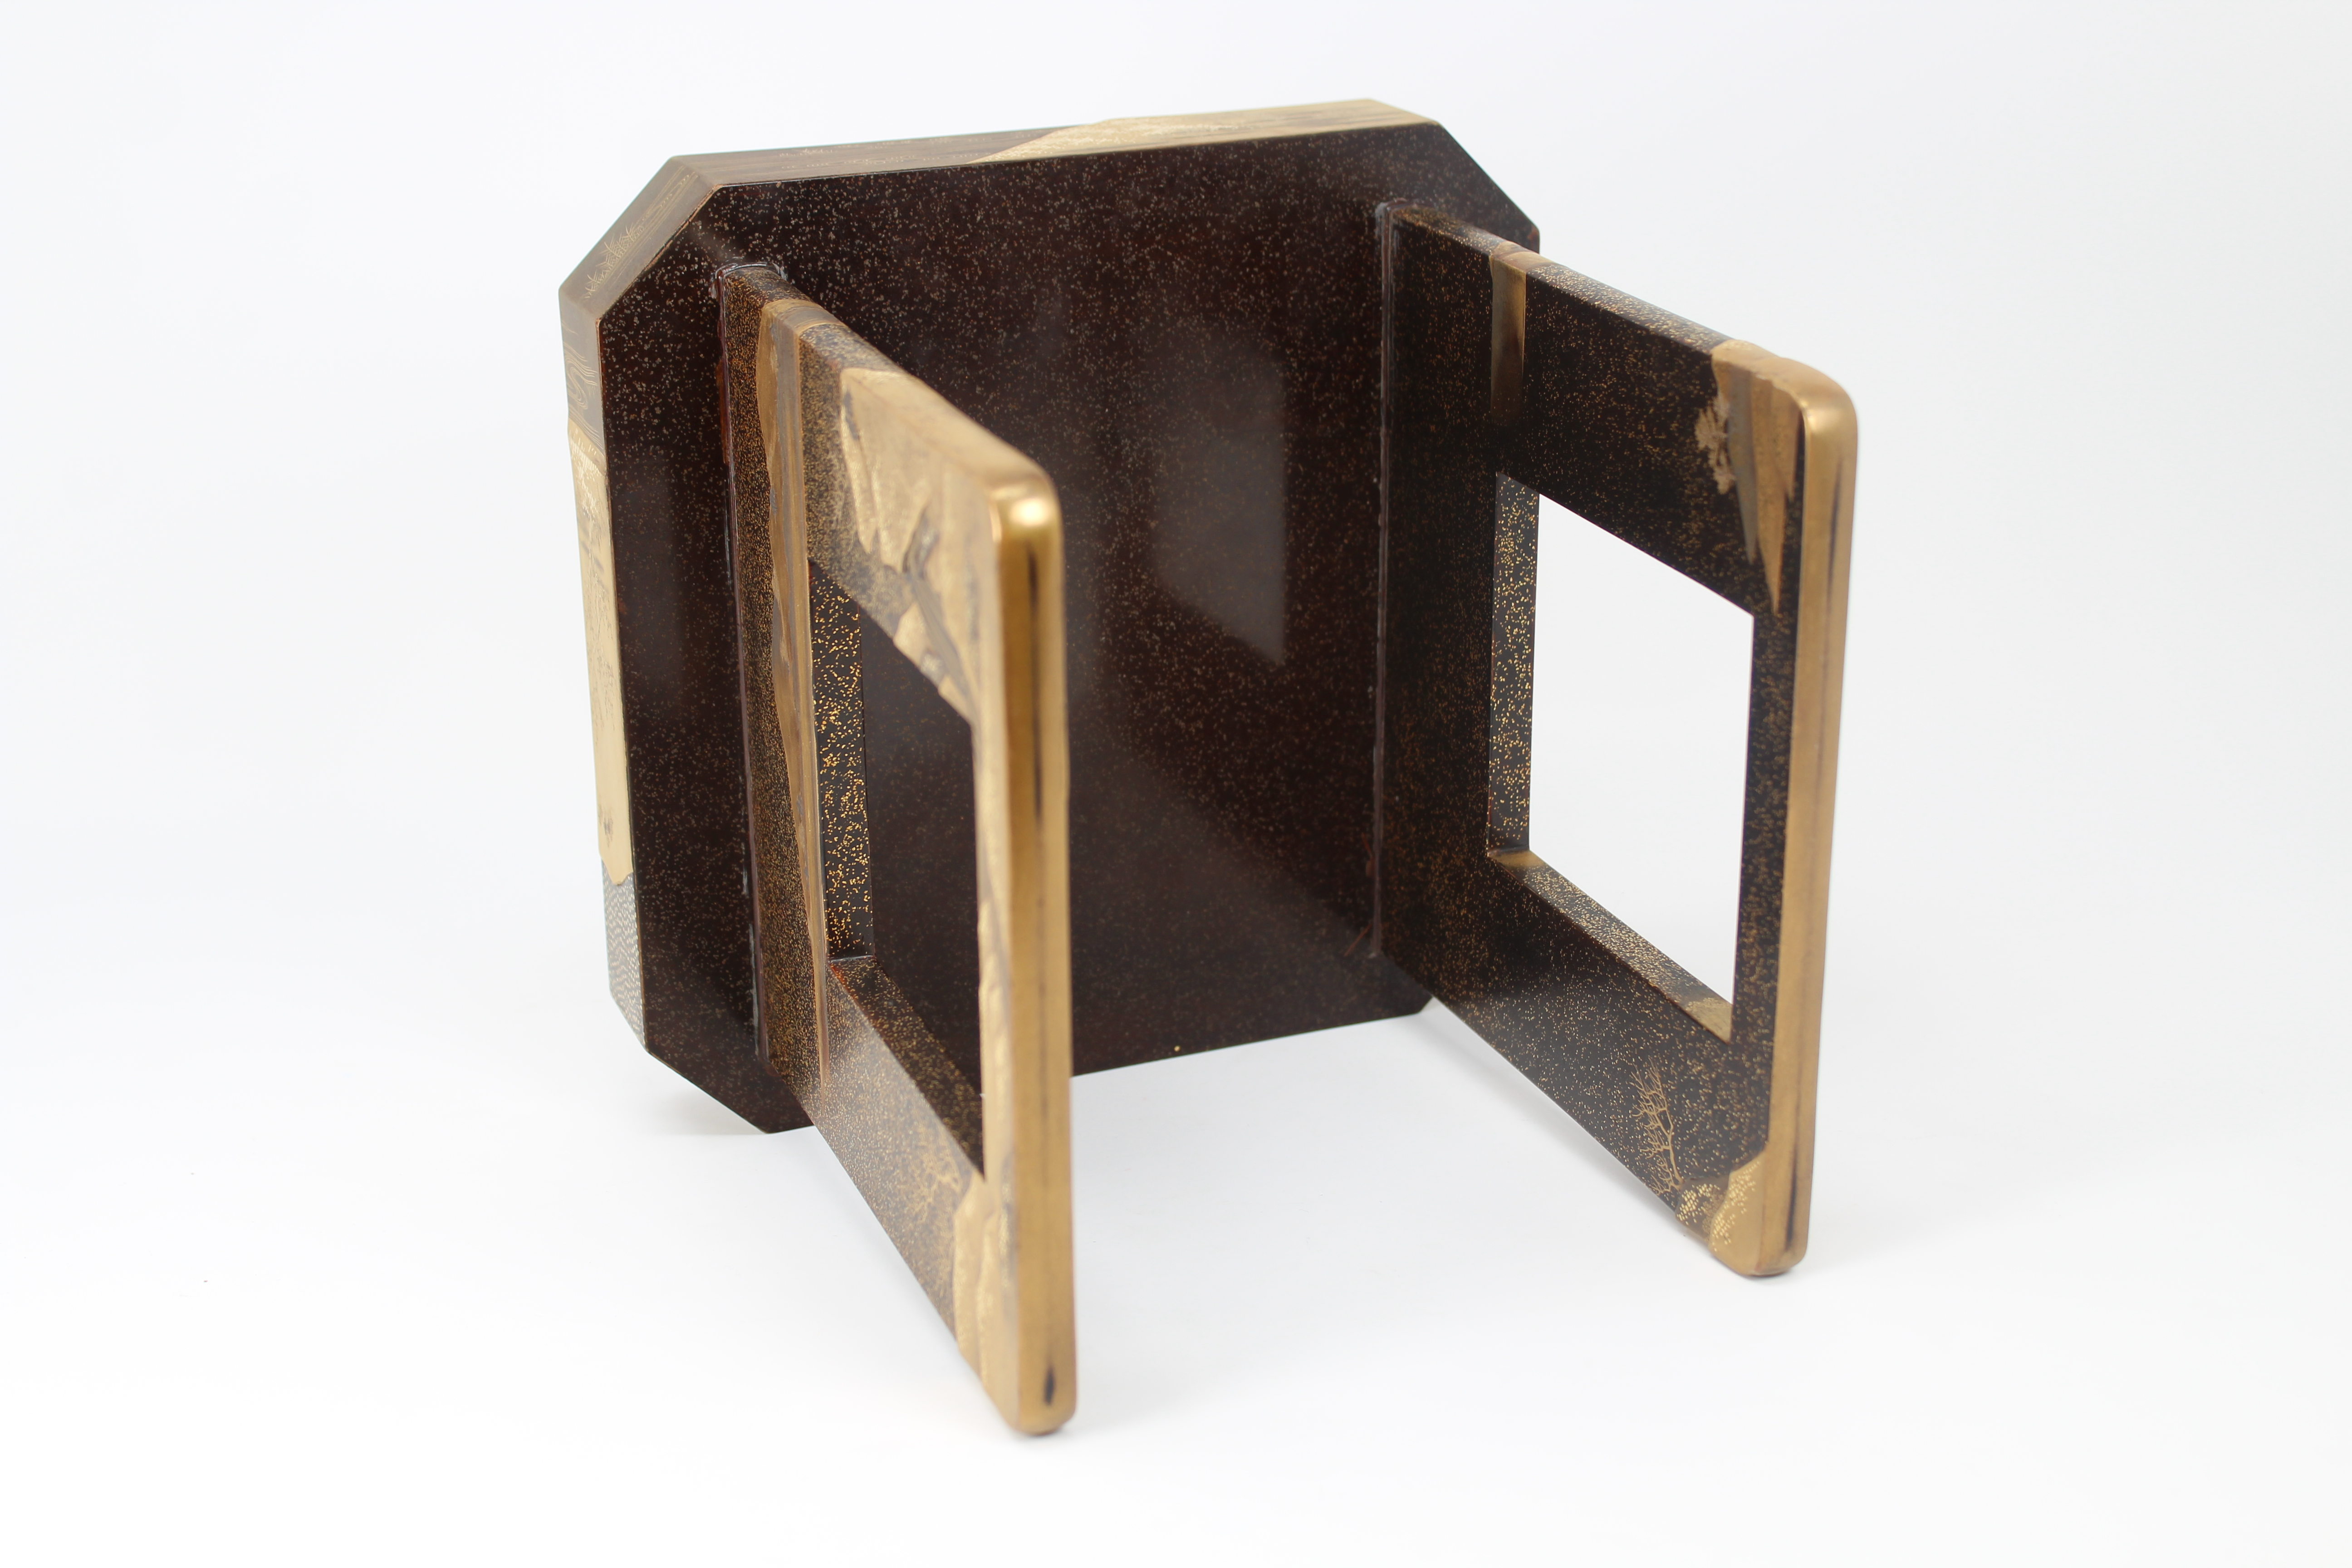 Lot 55 - Antique Japanese Lacquer Sake Cup Tray Stand